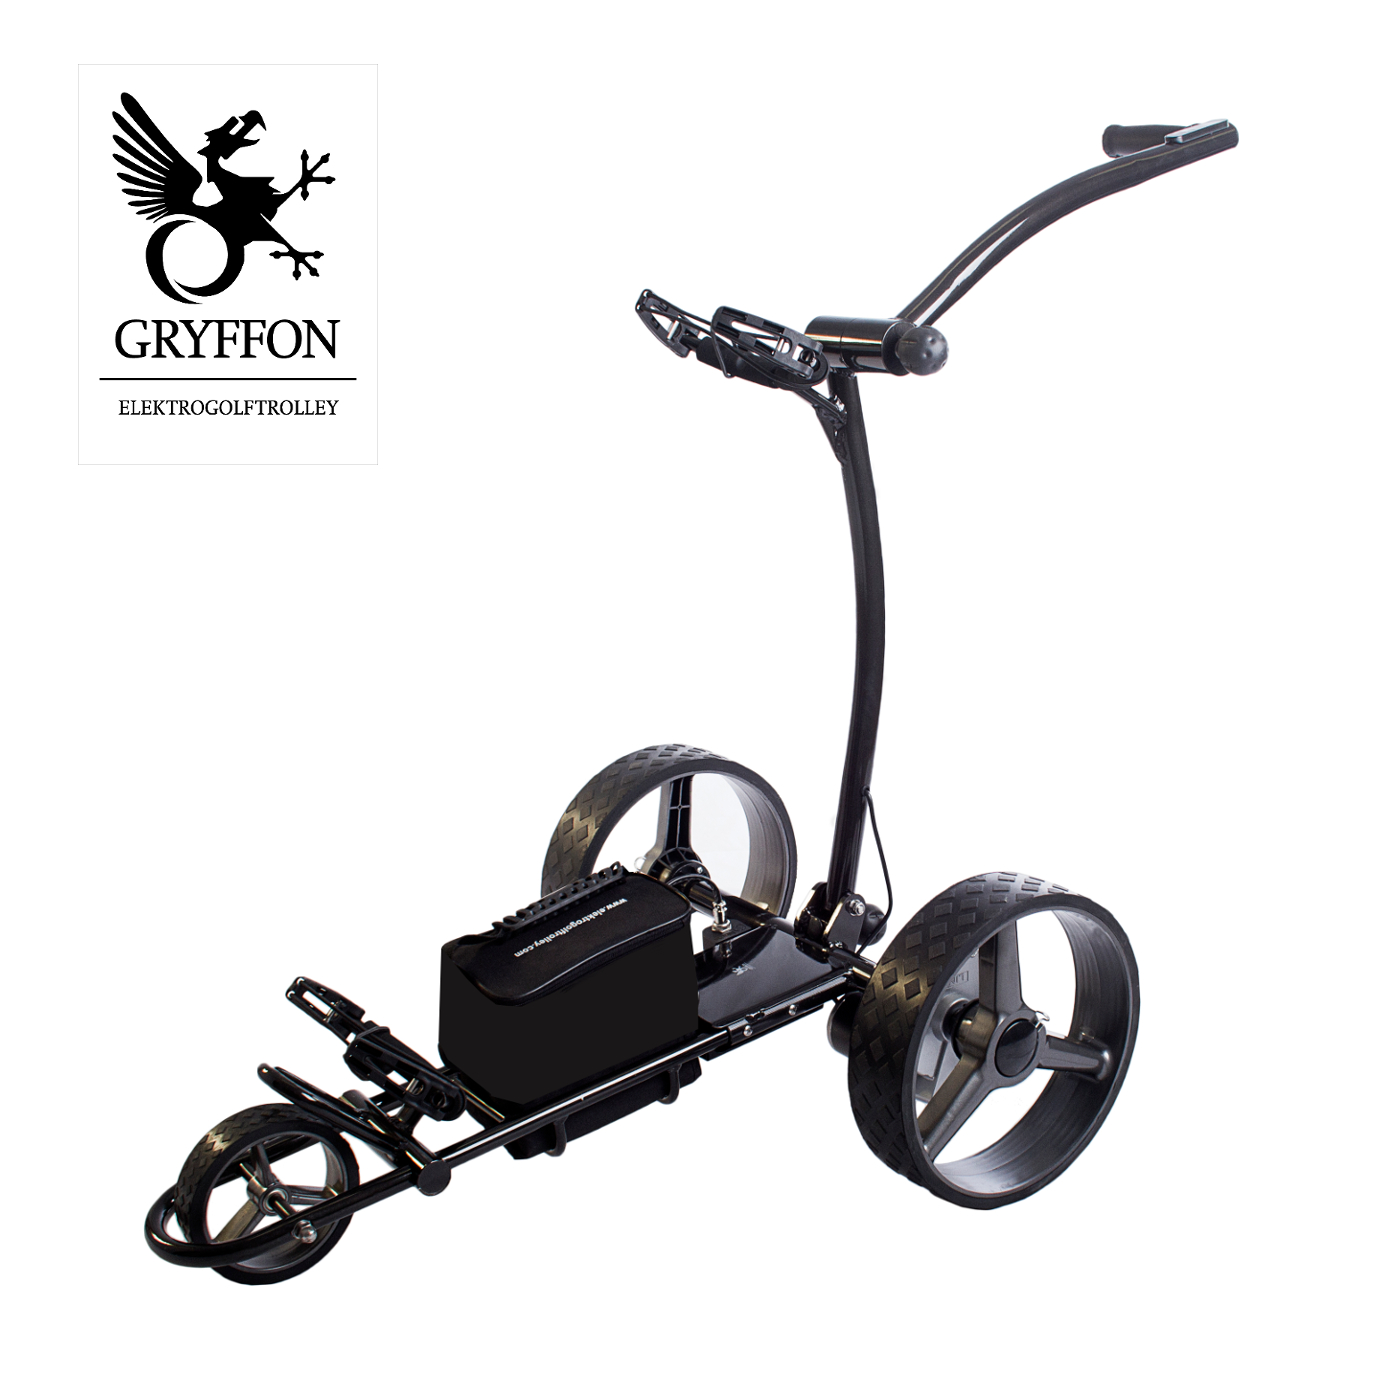 elektro golf caddy gryffon basic blei akku trolley ebay. Black Bedroom Furniture Sets. Home Design Ideas